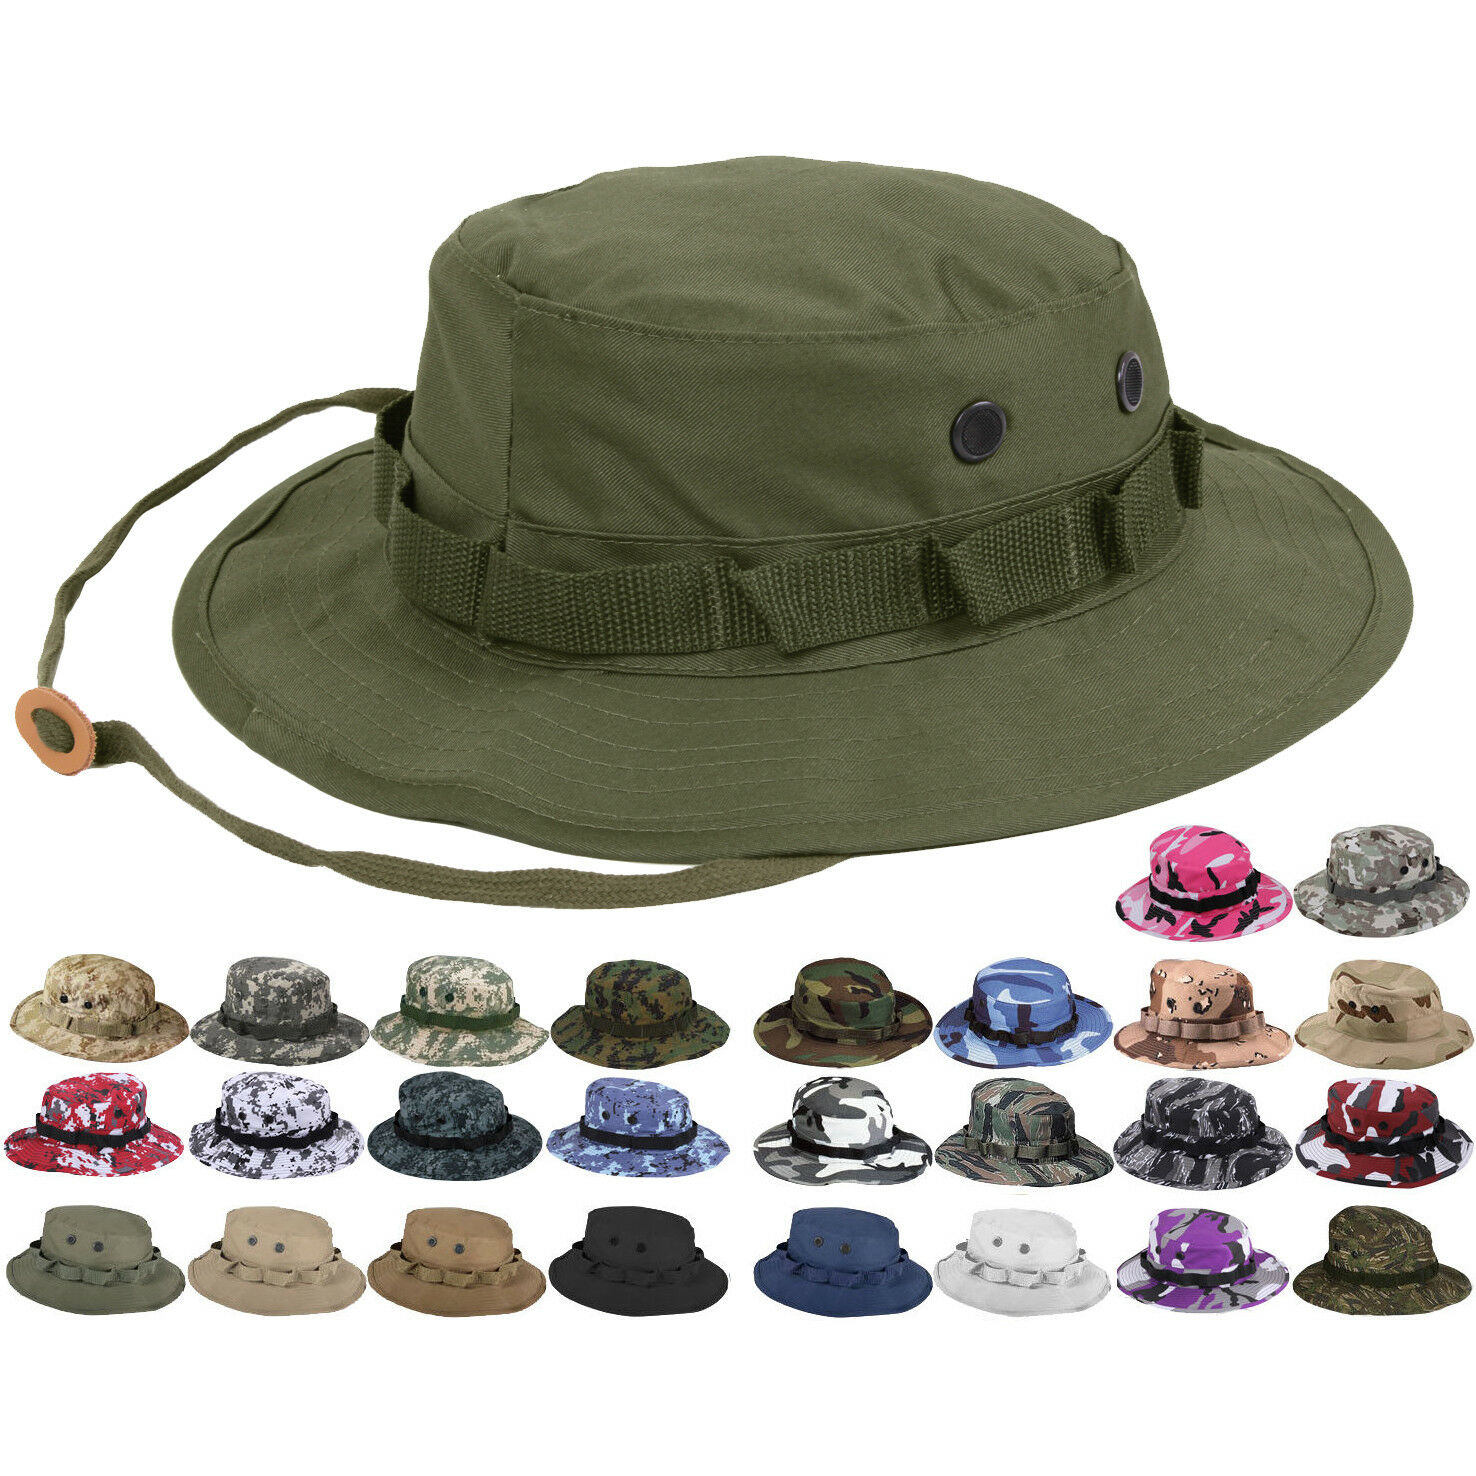 59a31fc1a Tactical Boonie Hat Military Camo Bucket Wide Brim Sun Fishing Bush Booney  Cap